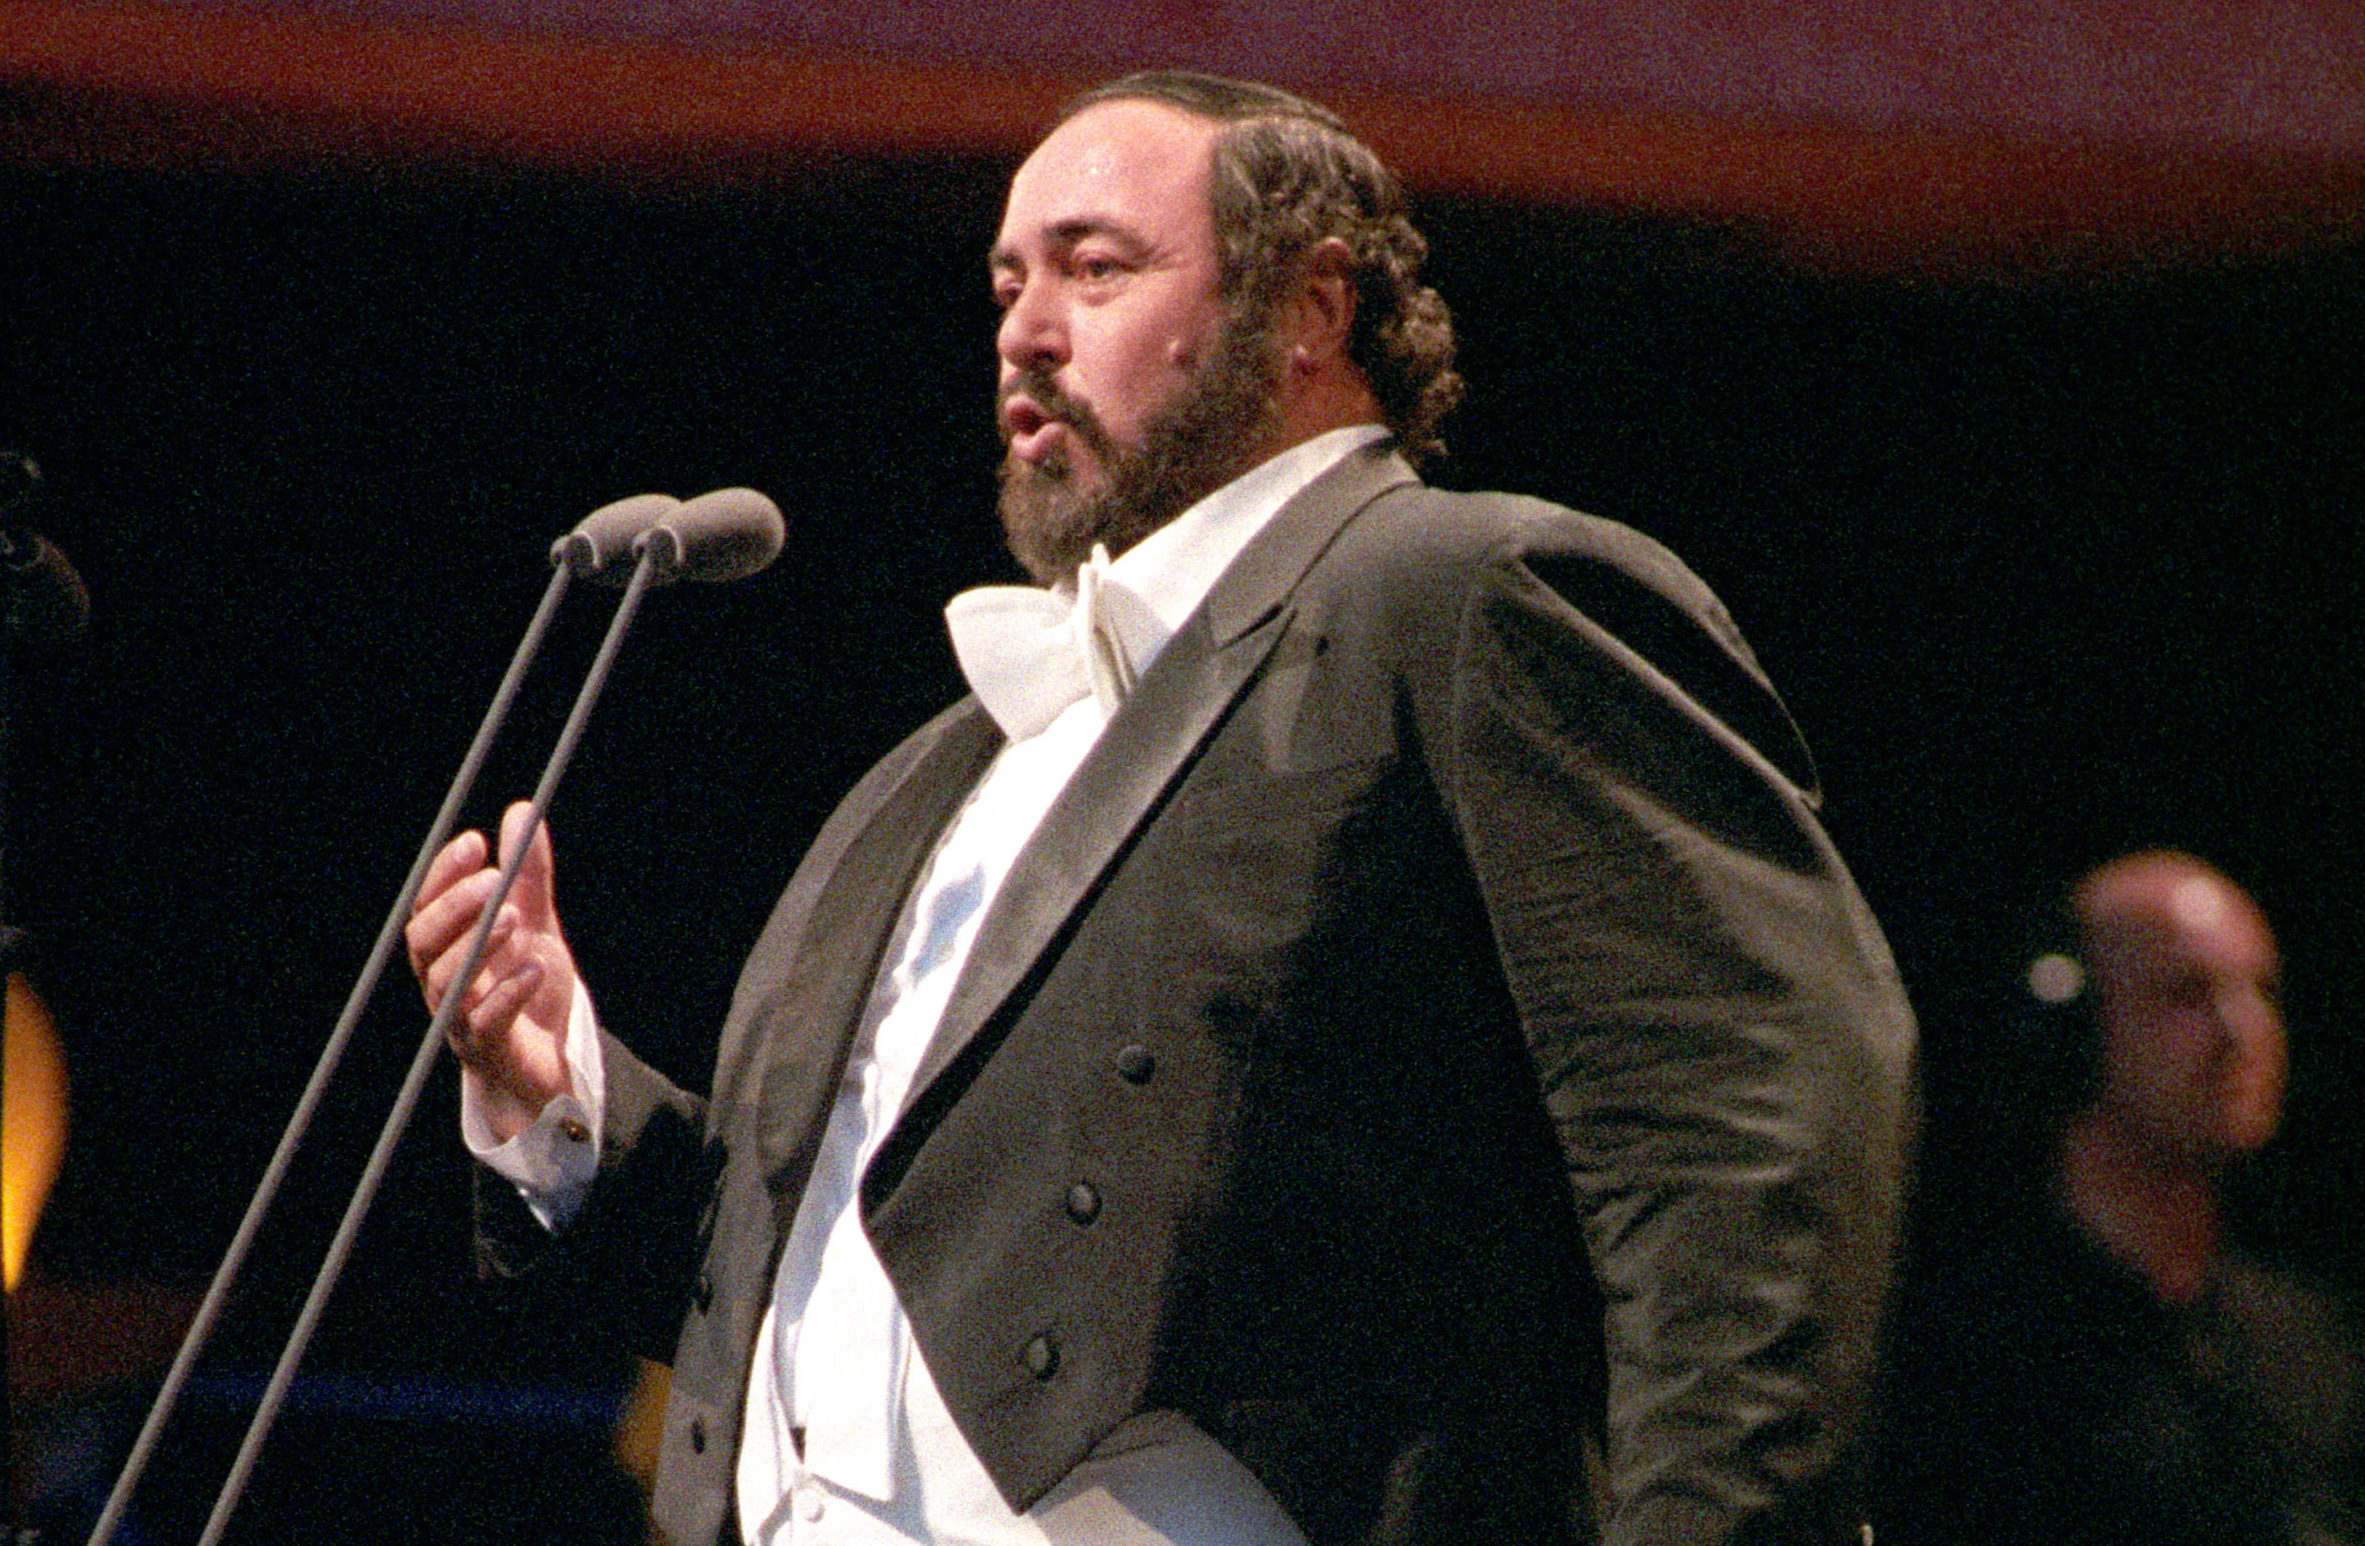 Meals for a tenor: Luciano Pavarotti's former butler reveals